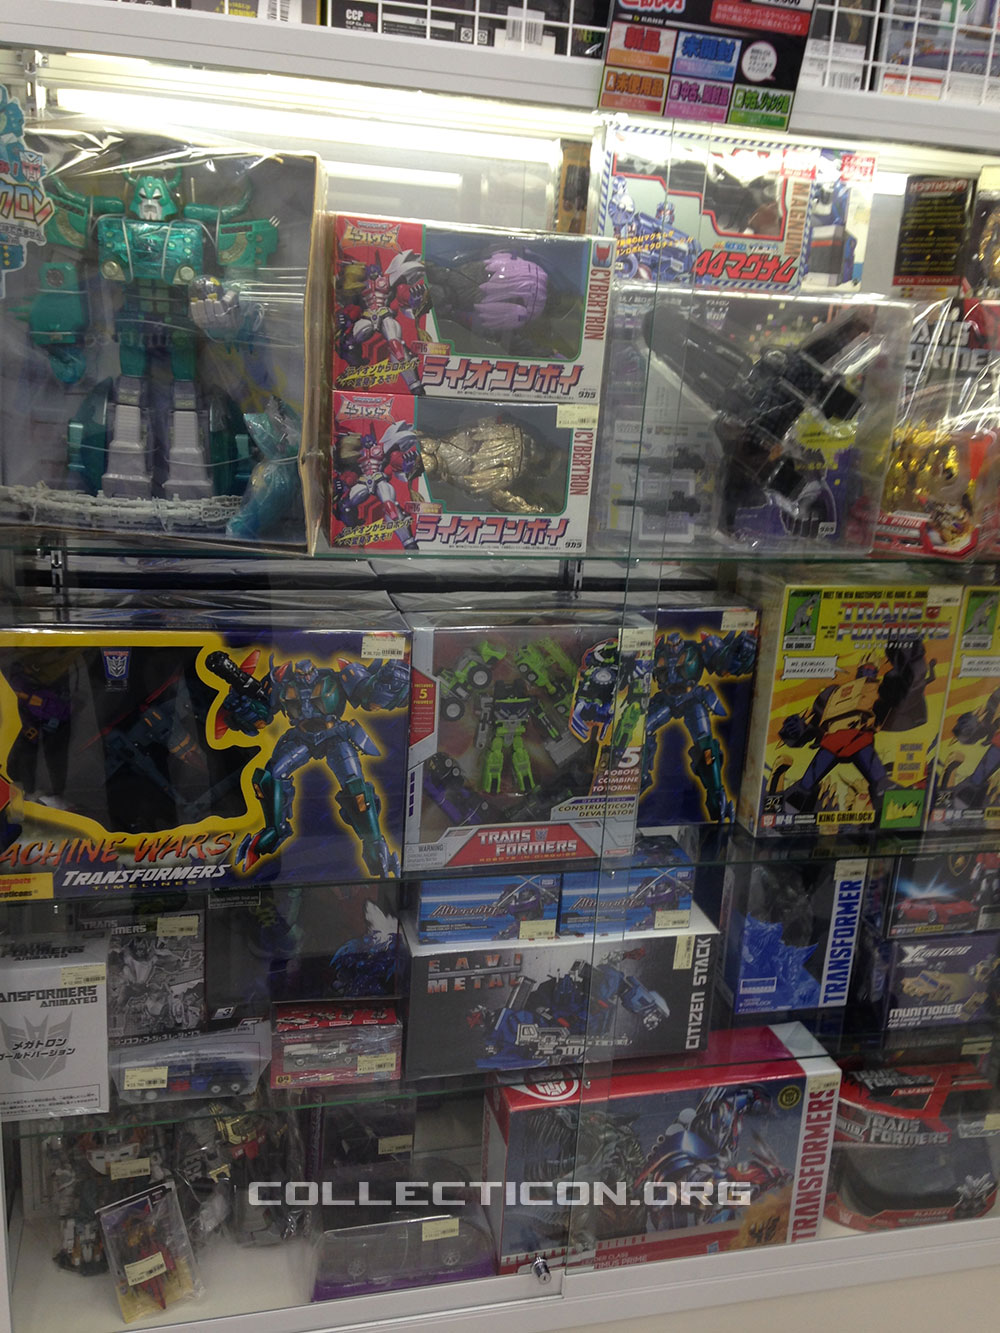 02-akihabara-jungle-luckydraw-transformers-case